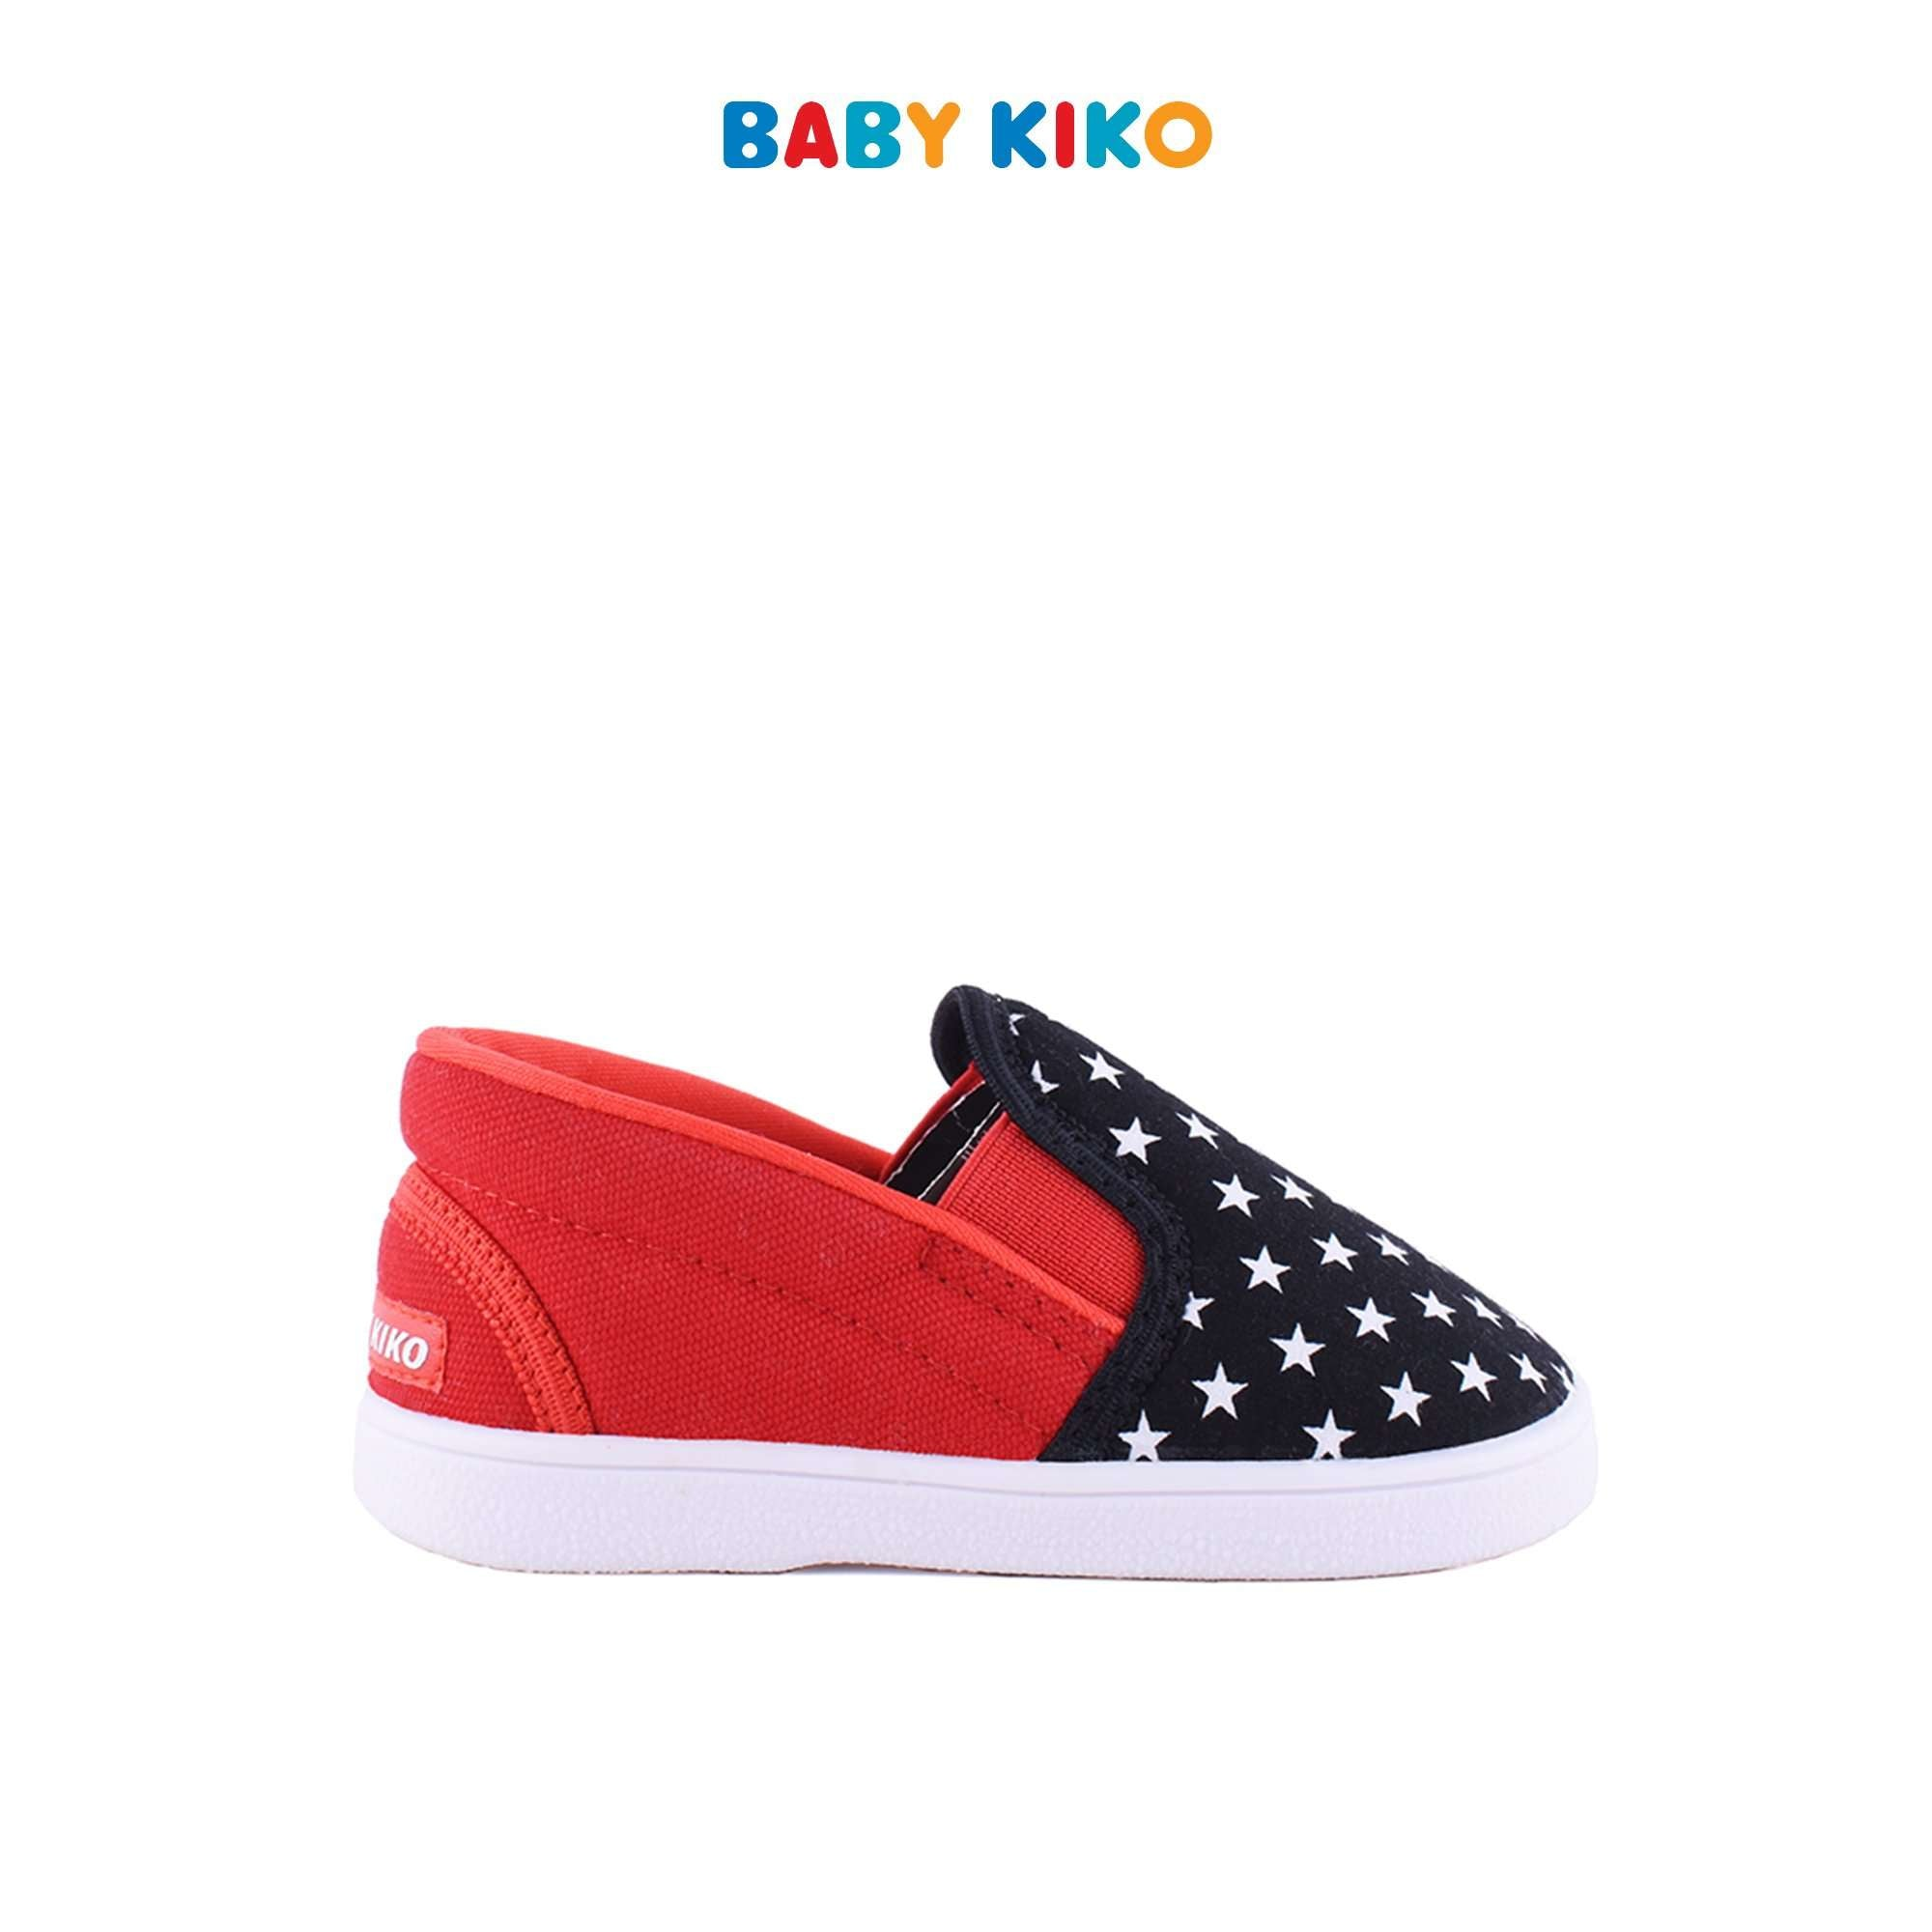 Baby KIKO Toddler Boy Textile Shoes - Black B922106-5087-G9 : Buy Baby KIKO online at CMG.MY